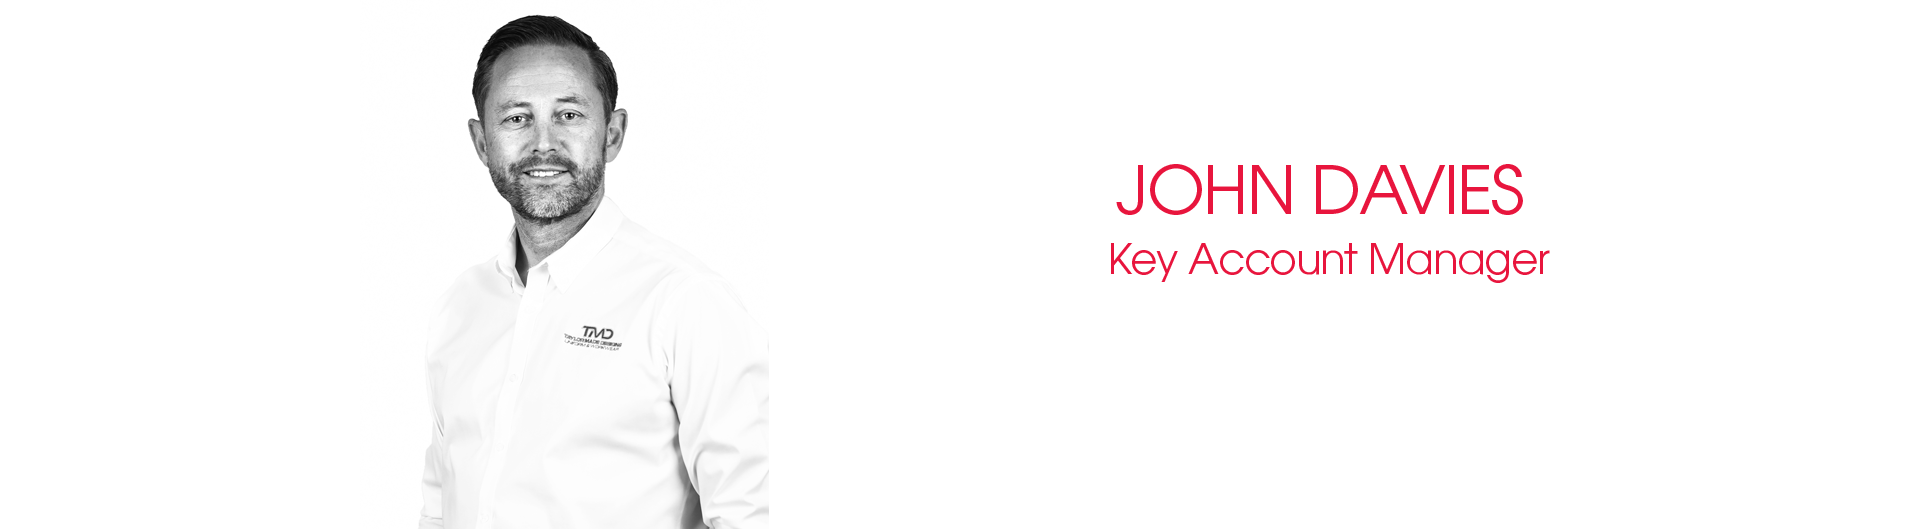 John Davies Key Account Manager